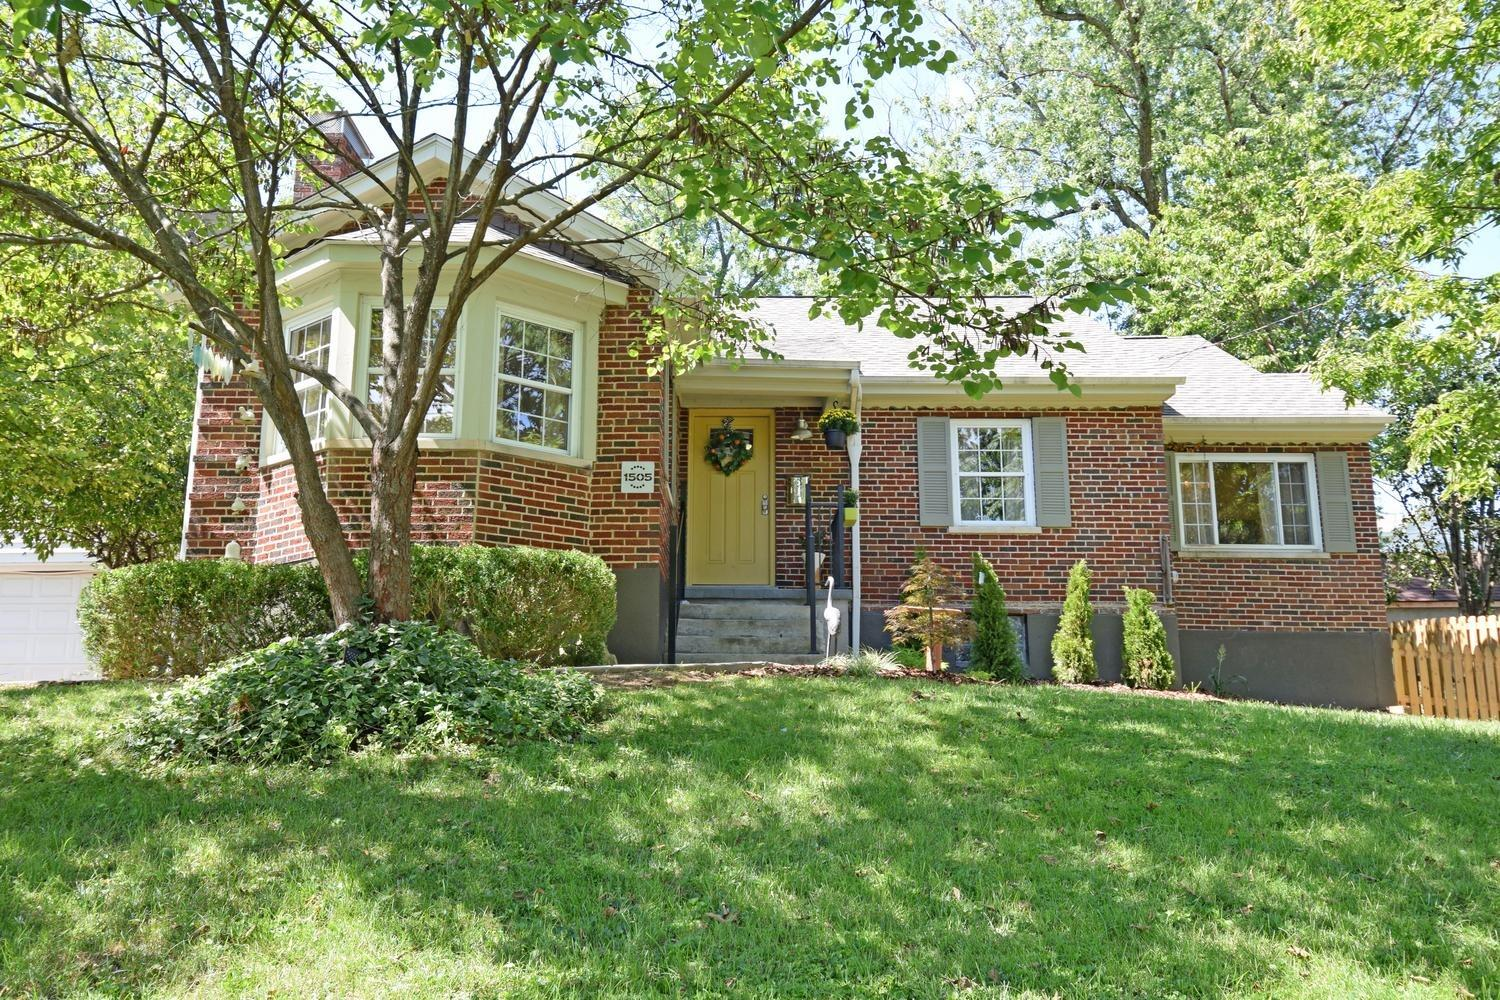 1505 West Avenue, Wyoming, Ohio 45215, 3 Bedrooms Bedrooms, 7 Rooms Rooms,1 BathroomBathrooms,Single Family Residence,For Sale,West,1714034